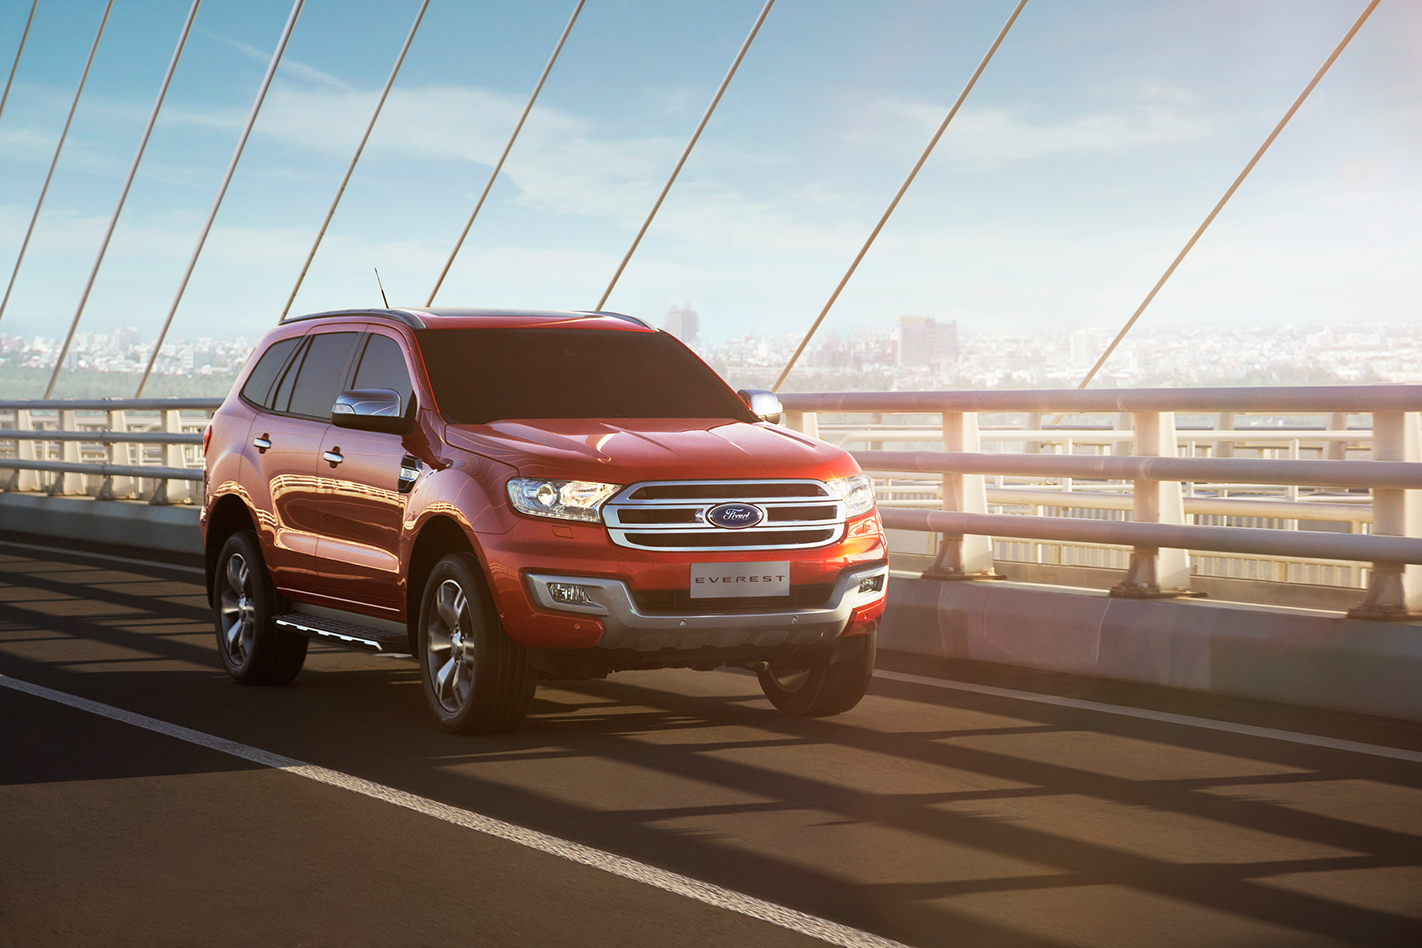 2015 ford everest reviews - 2015 Ford Everest Review